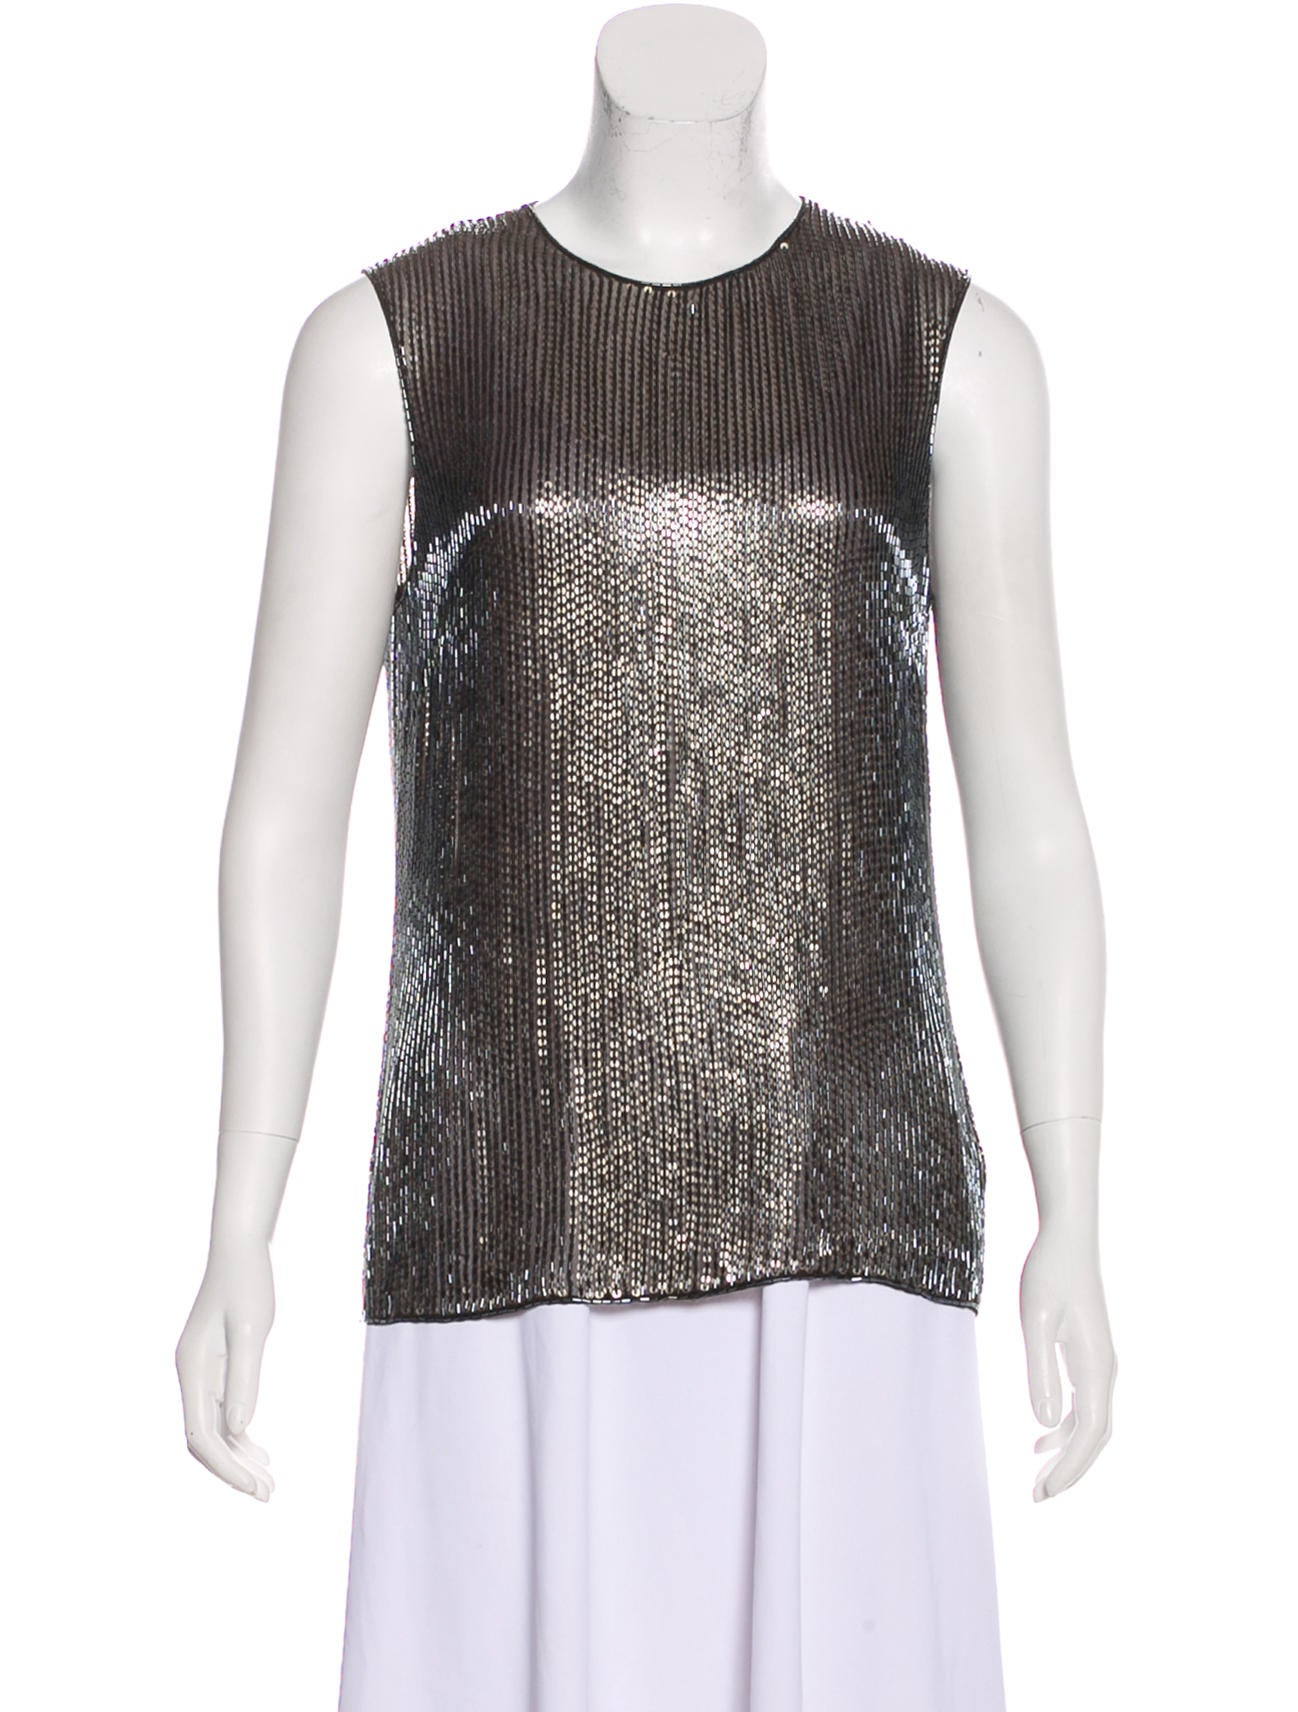 5bda6e05d4cb14 Jason Wu Silk Bead Top w  Tags - Clothing - JAS27953